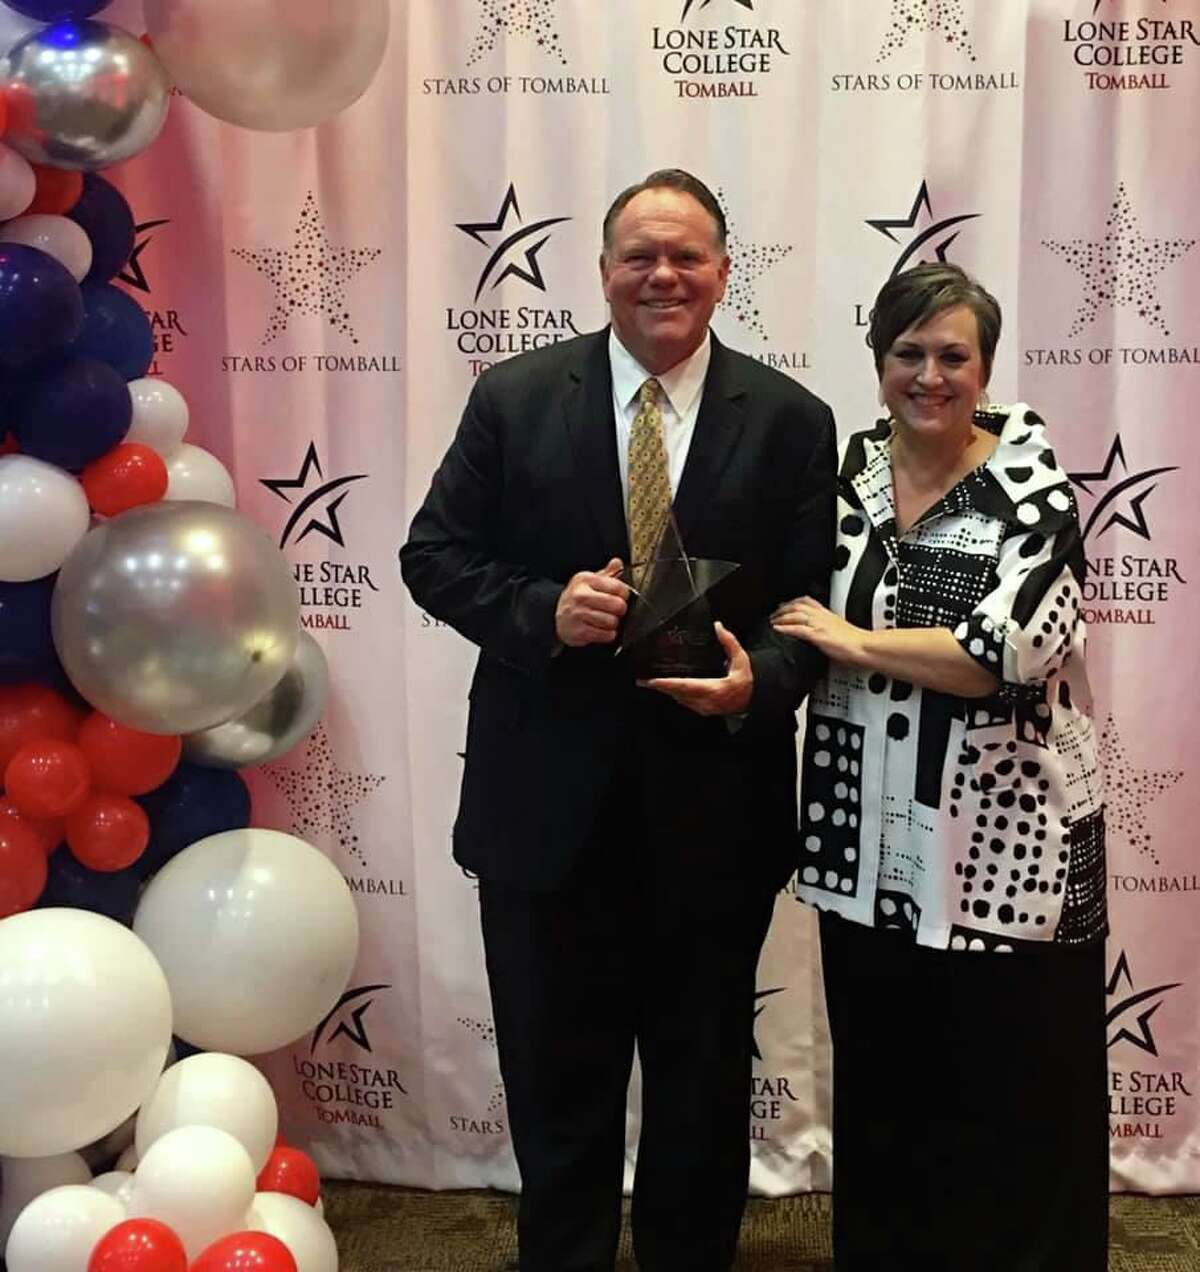 Bruce Hillegeist, president of the Greater Tomball Area Chamber of Commerce, holds the Star of Tomball award while standing with Lee Ann Nutt, president of Lone Star College-Tomball, during the inaugural Stars of Tomball event on Tuesday, Nov. 19, 2019.